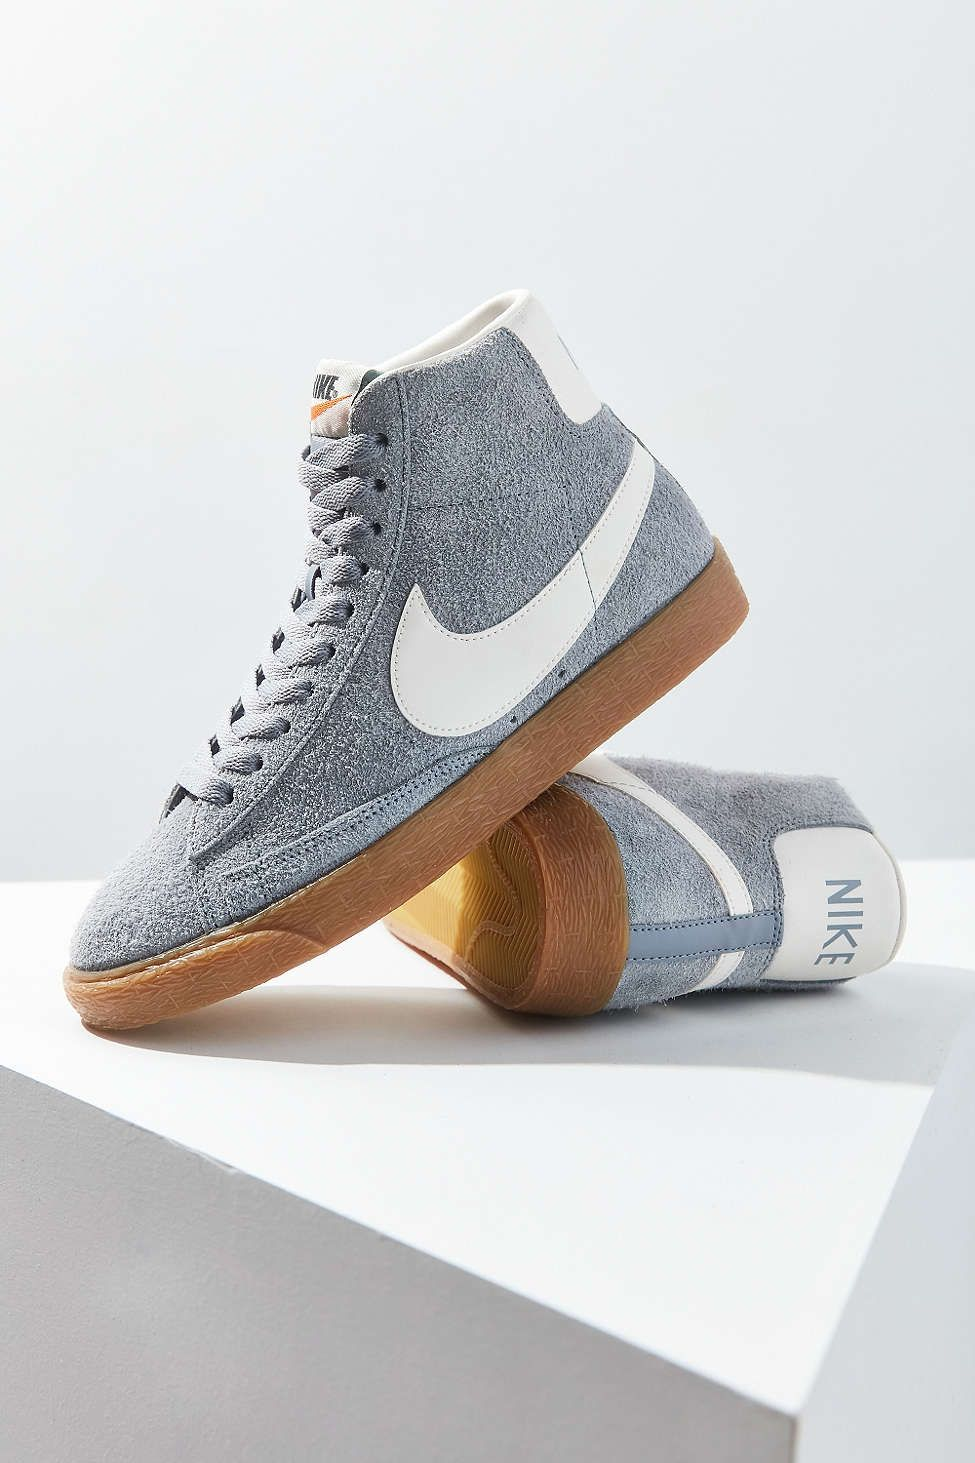 84f7b014 Nike Blazer Mid Vintage Suede Sneaker in 2019 | To Carry and Wear ...